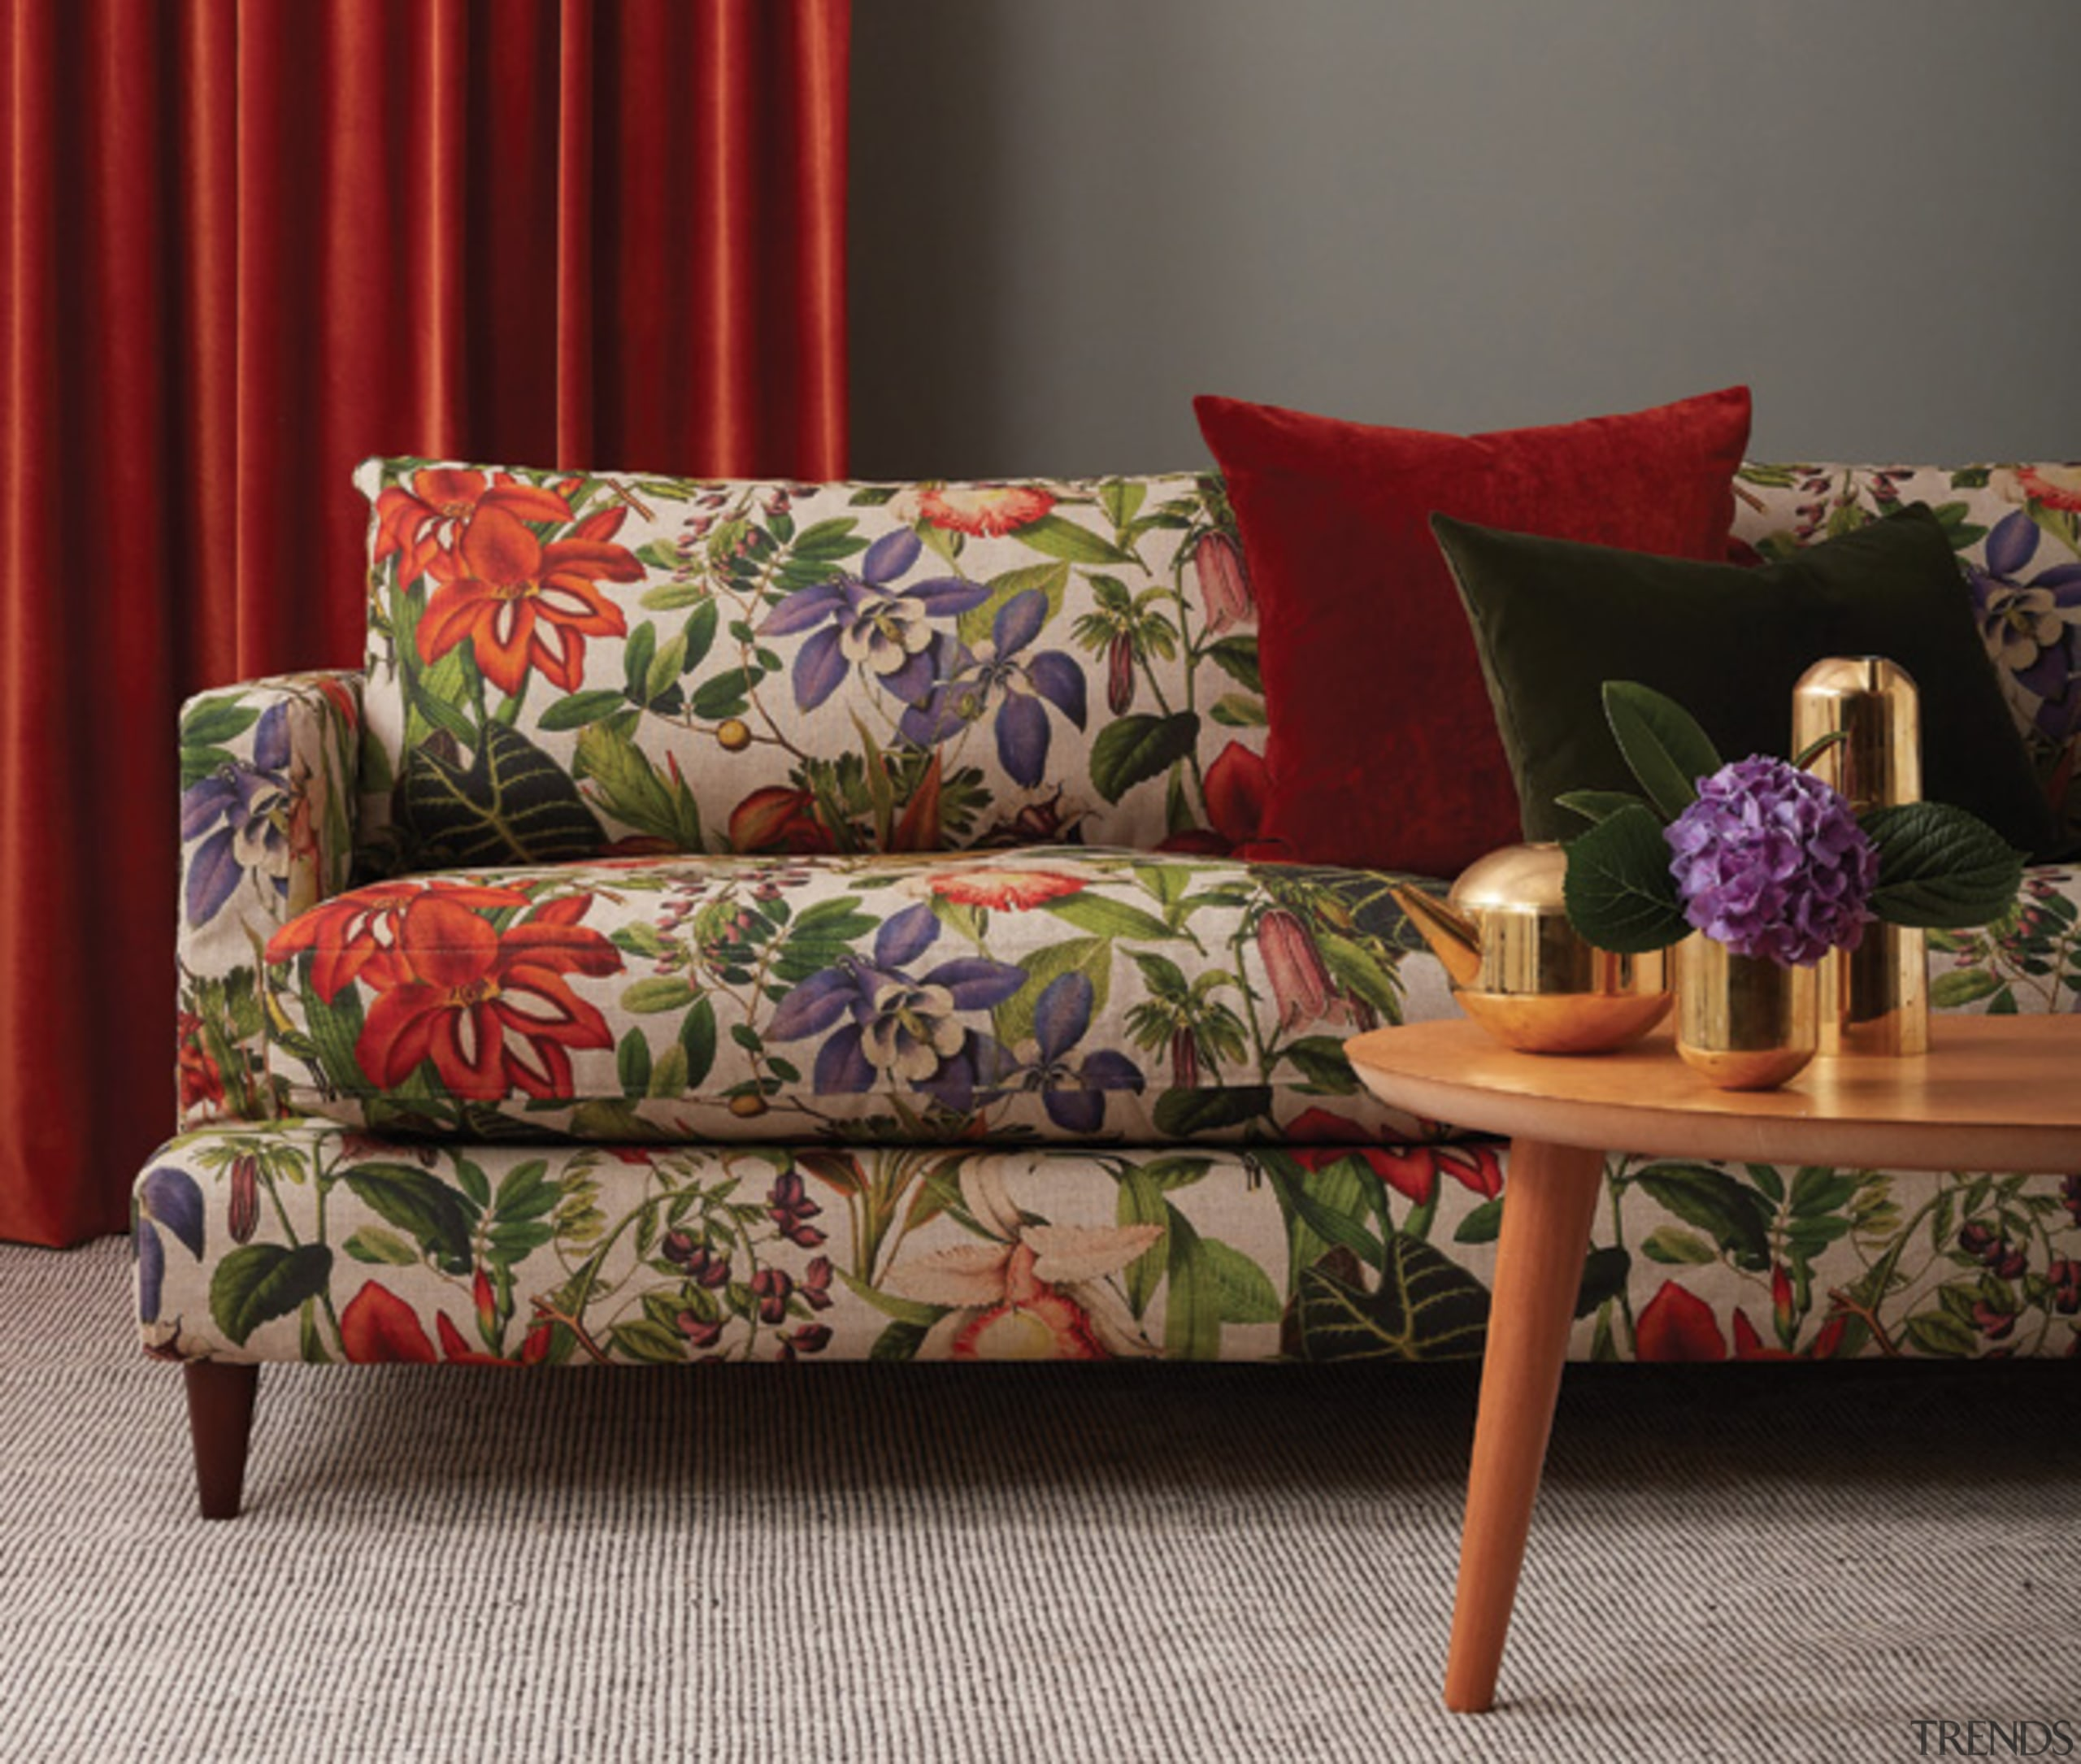 Interior design trends 2019 – what's in and chair, couch, cushion, floor, furniture, interior design, living room, loveseat, pillow, plant, room, slipcover, sofa bed, studio couch, table, textile, throw pillow, red, gray